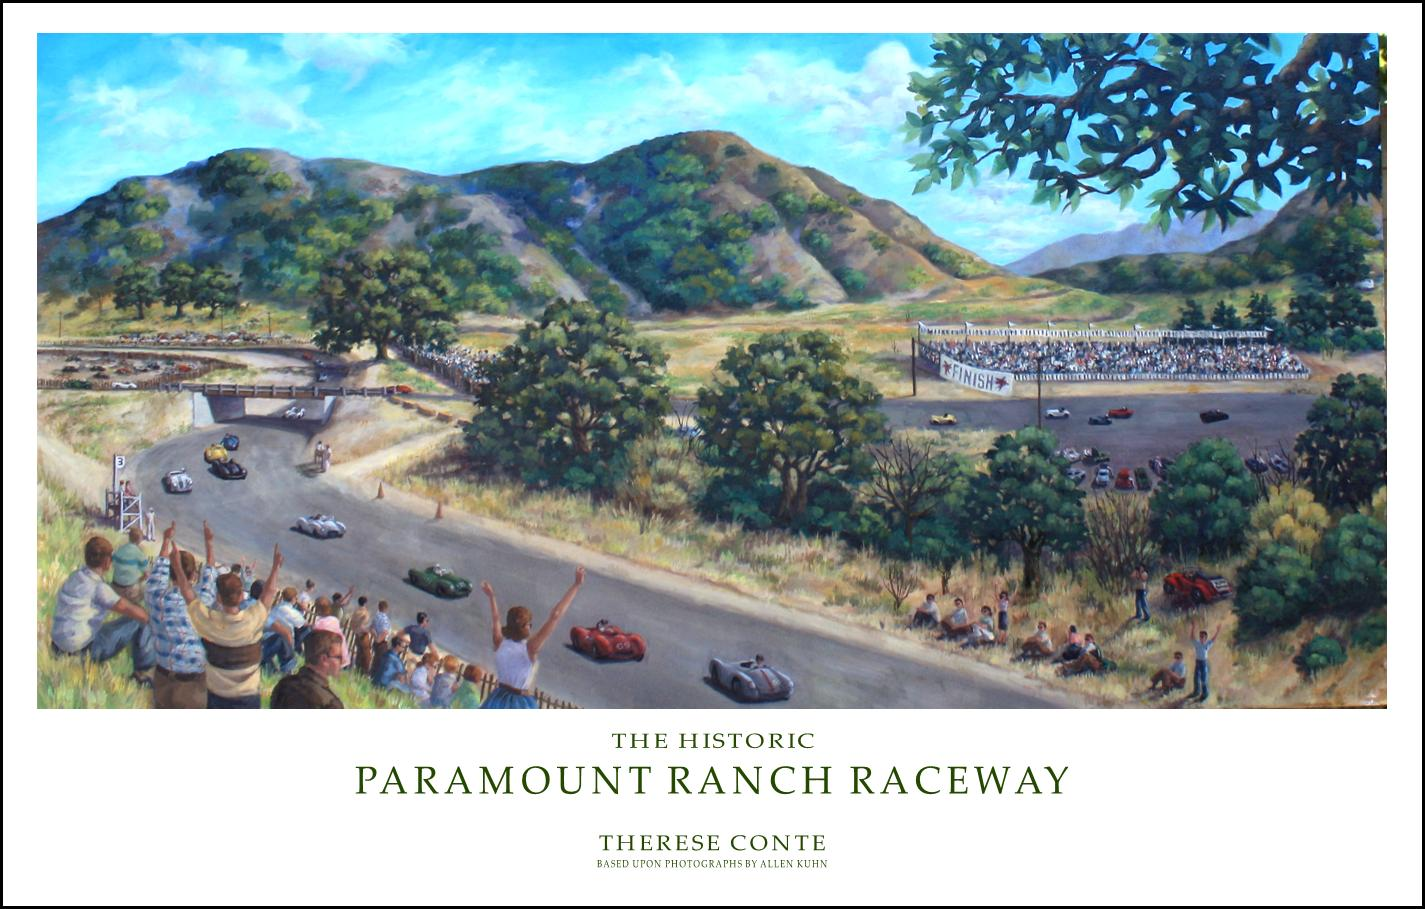 Painting of Paramount Ranch Raceway